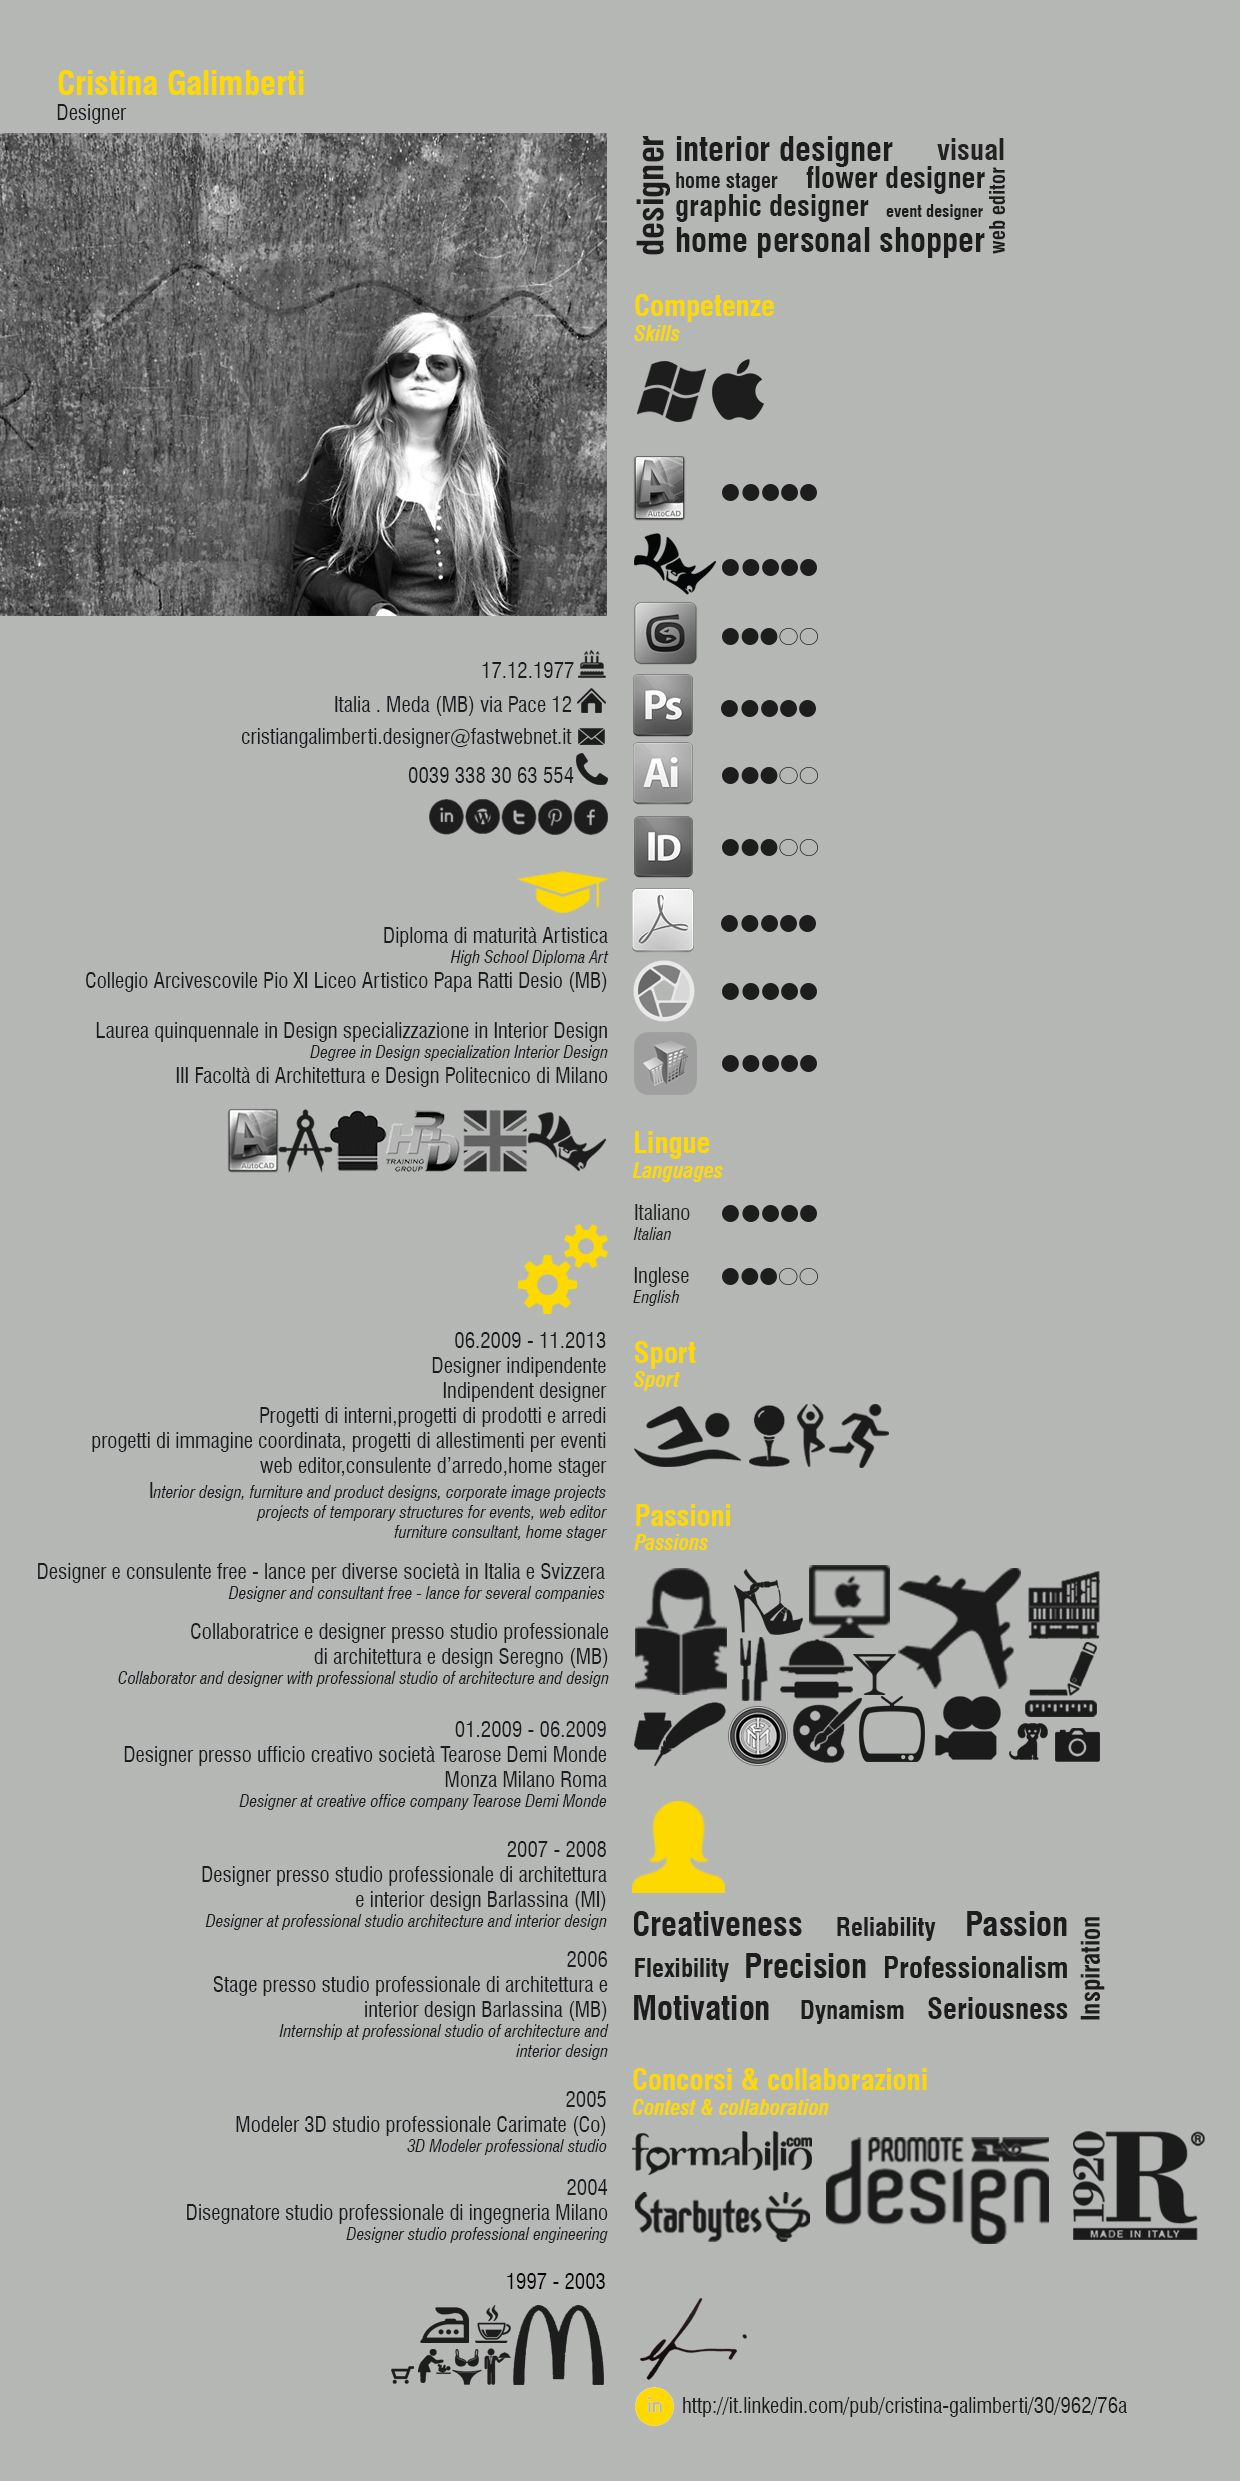 want to have your own cool infographic resume go to http